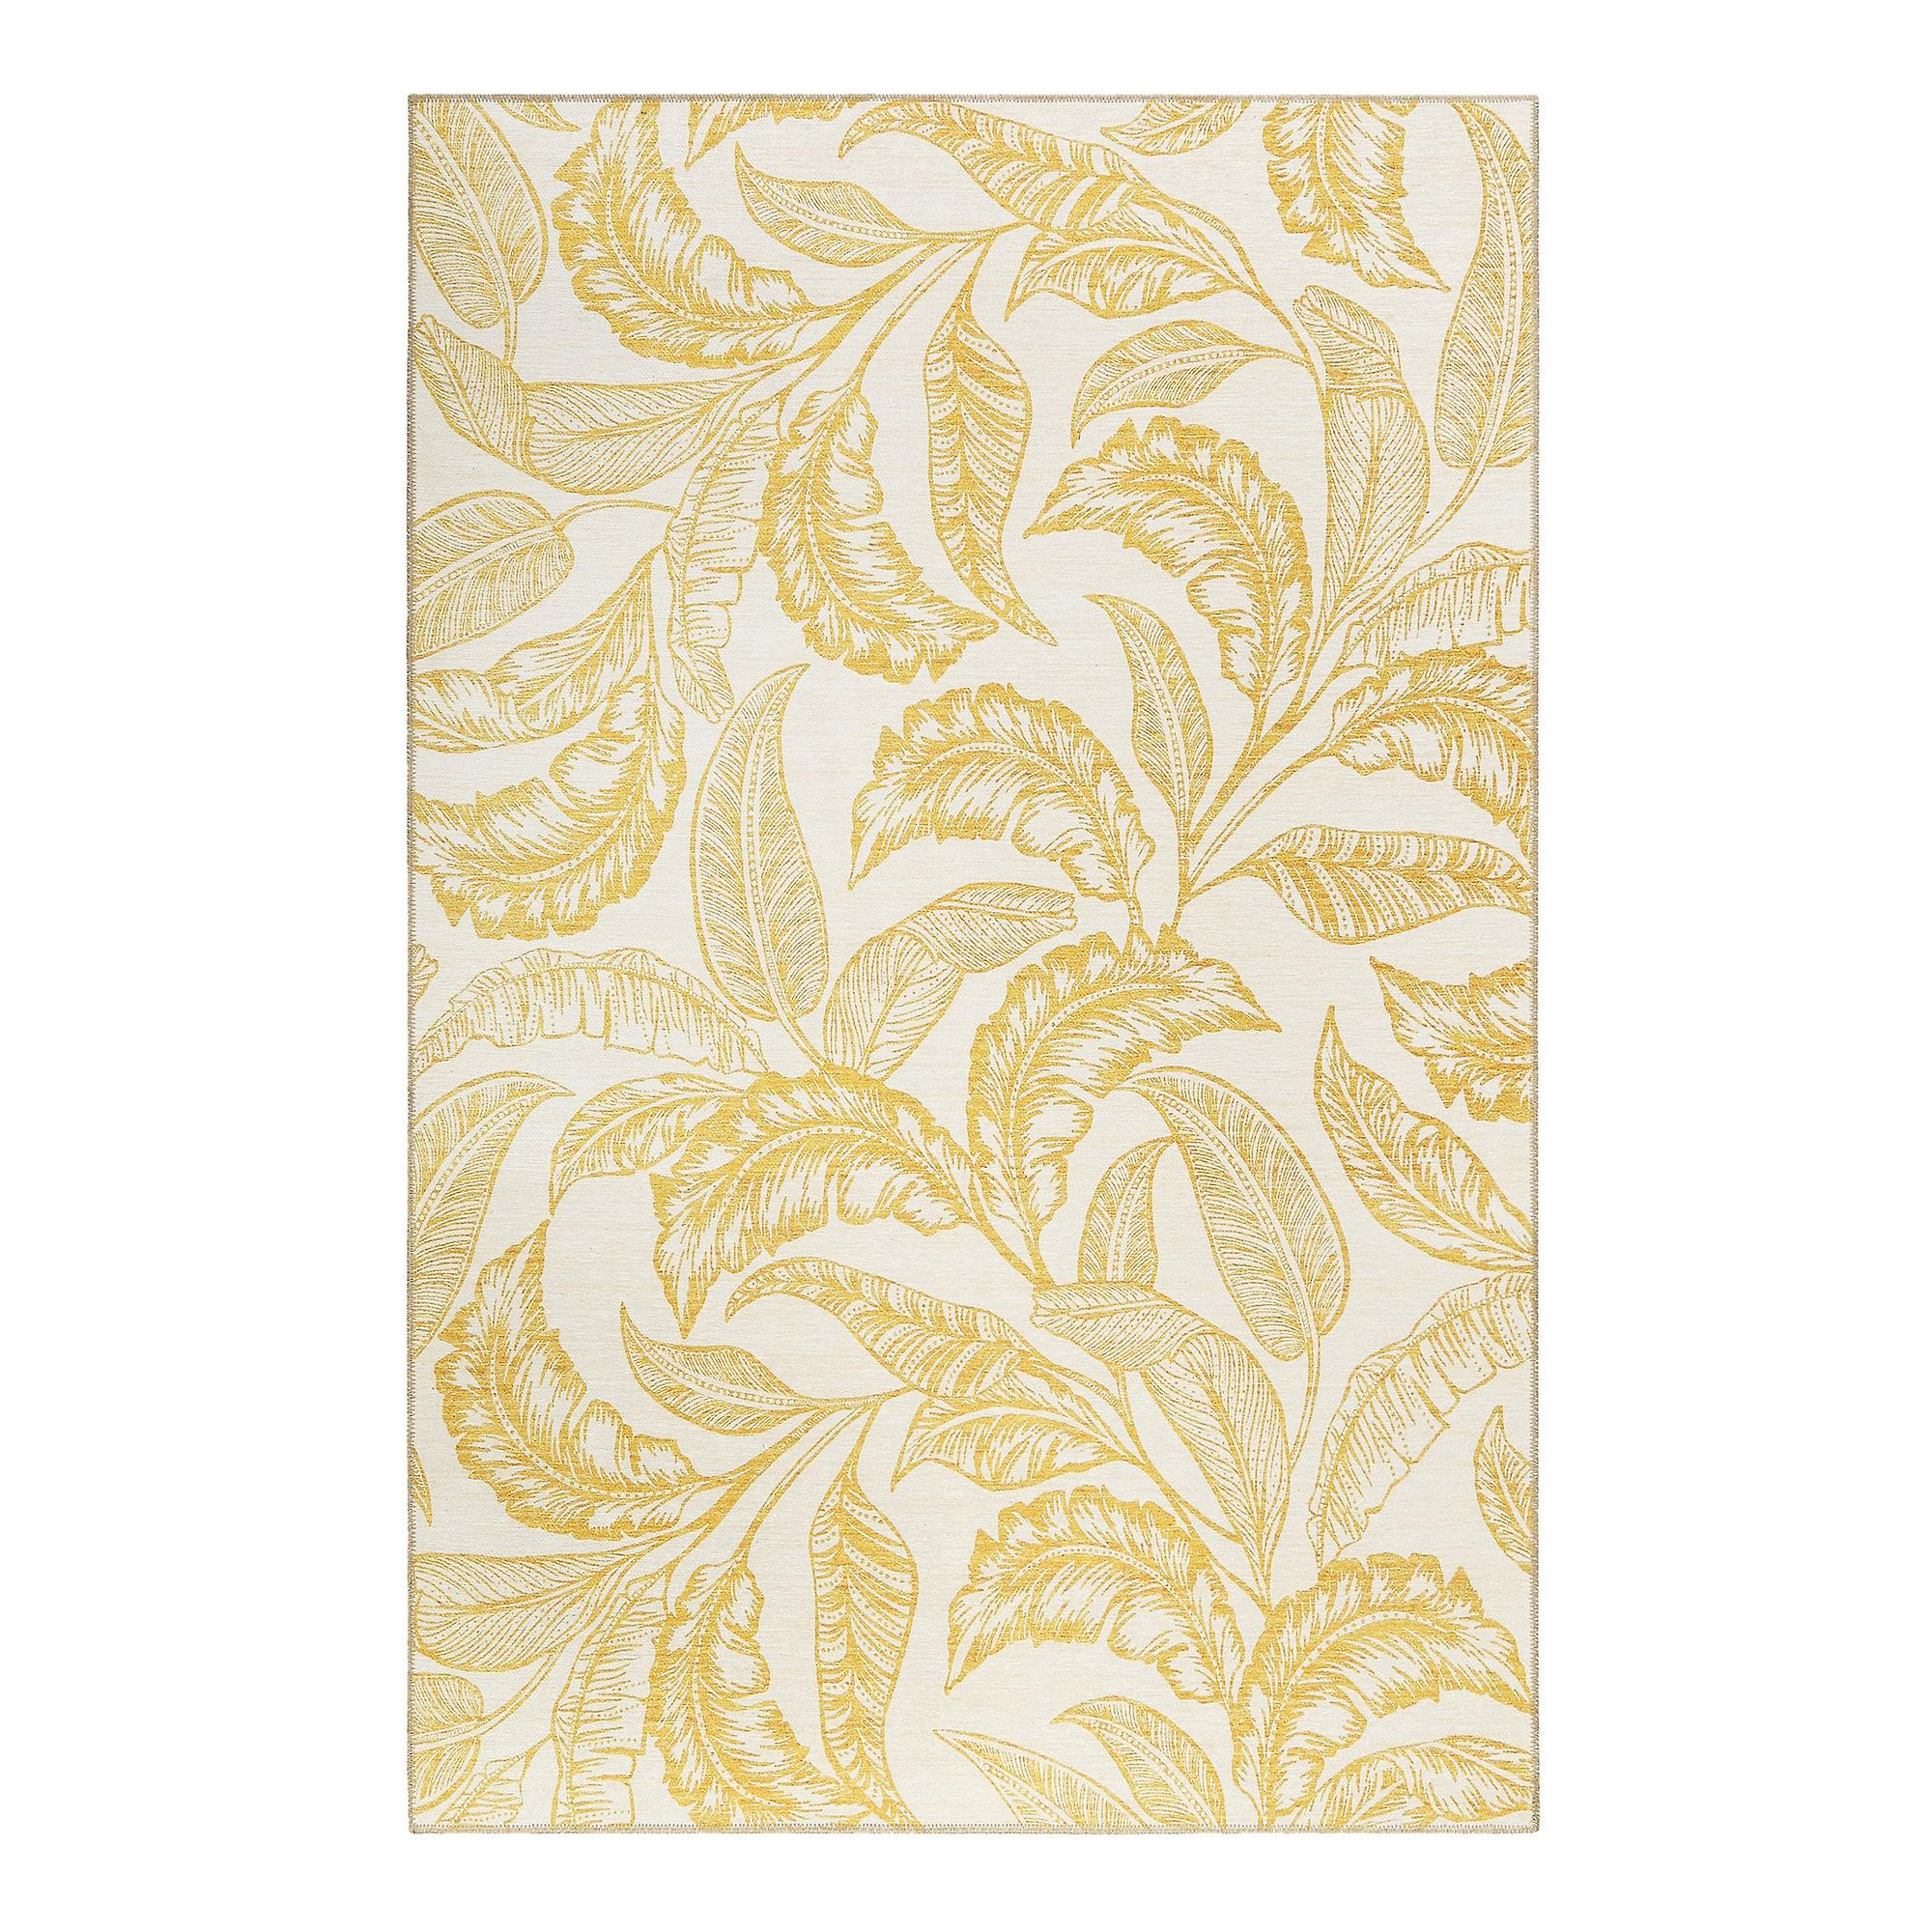 Mozambique Palm Rugs 38805 01 By Accessorize